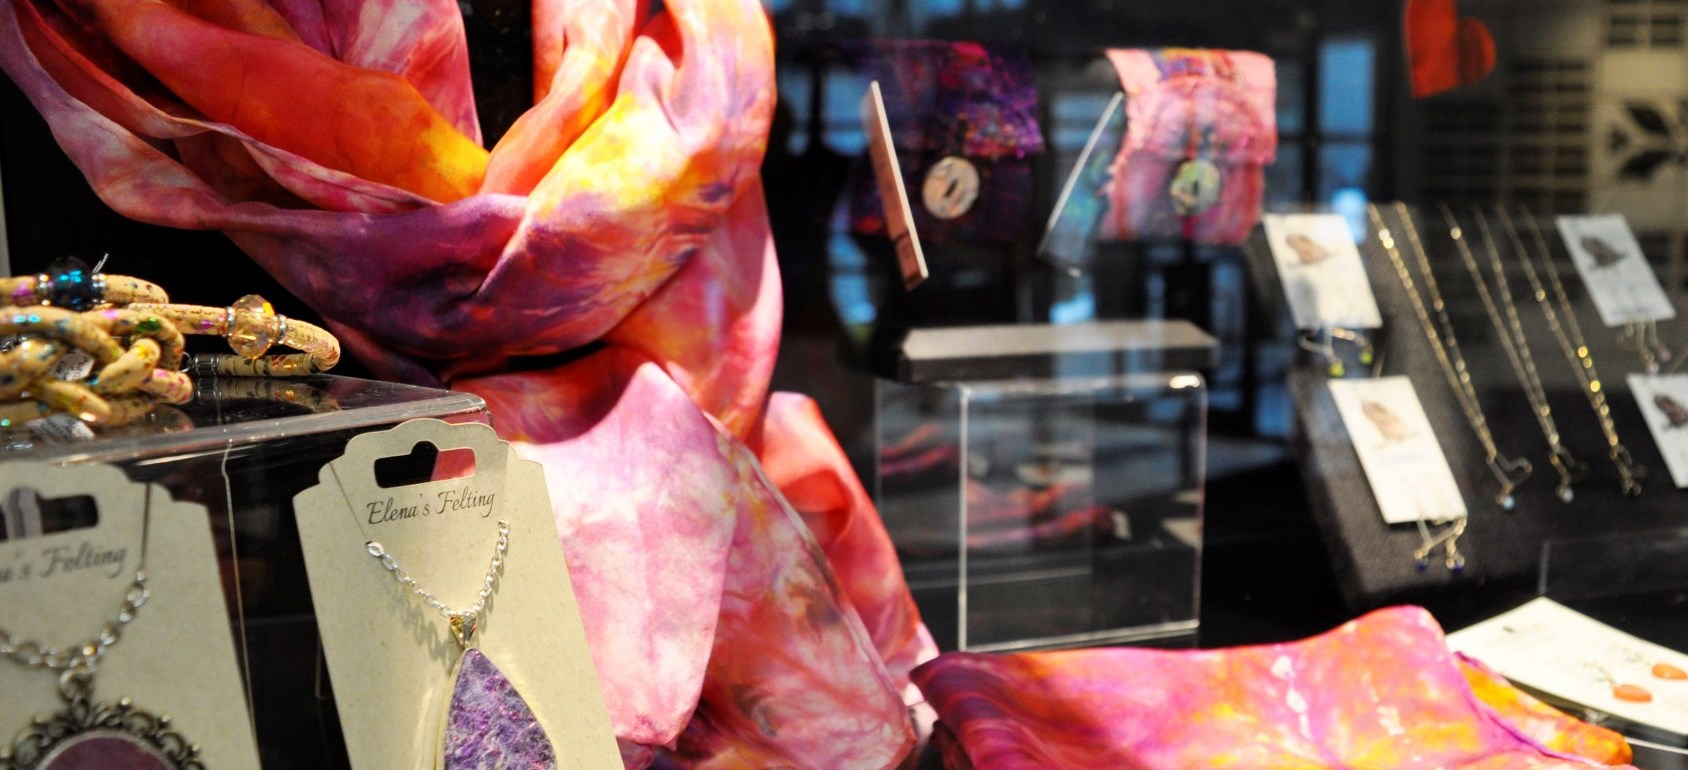 Scarfs and jewellery in gift shop display.